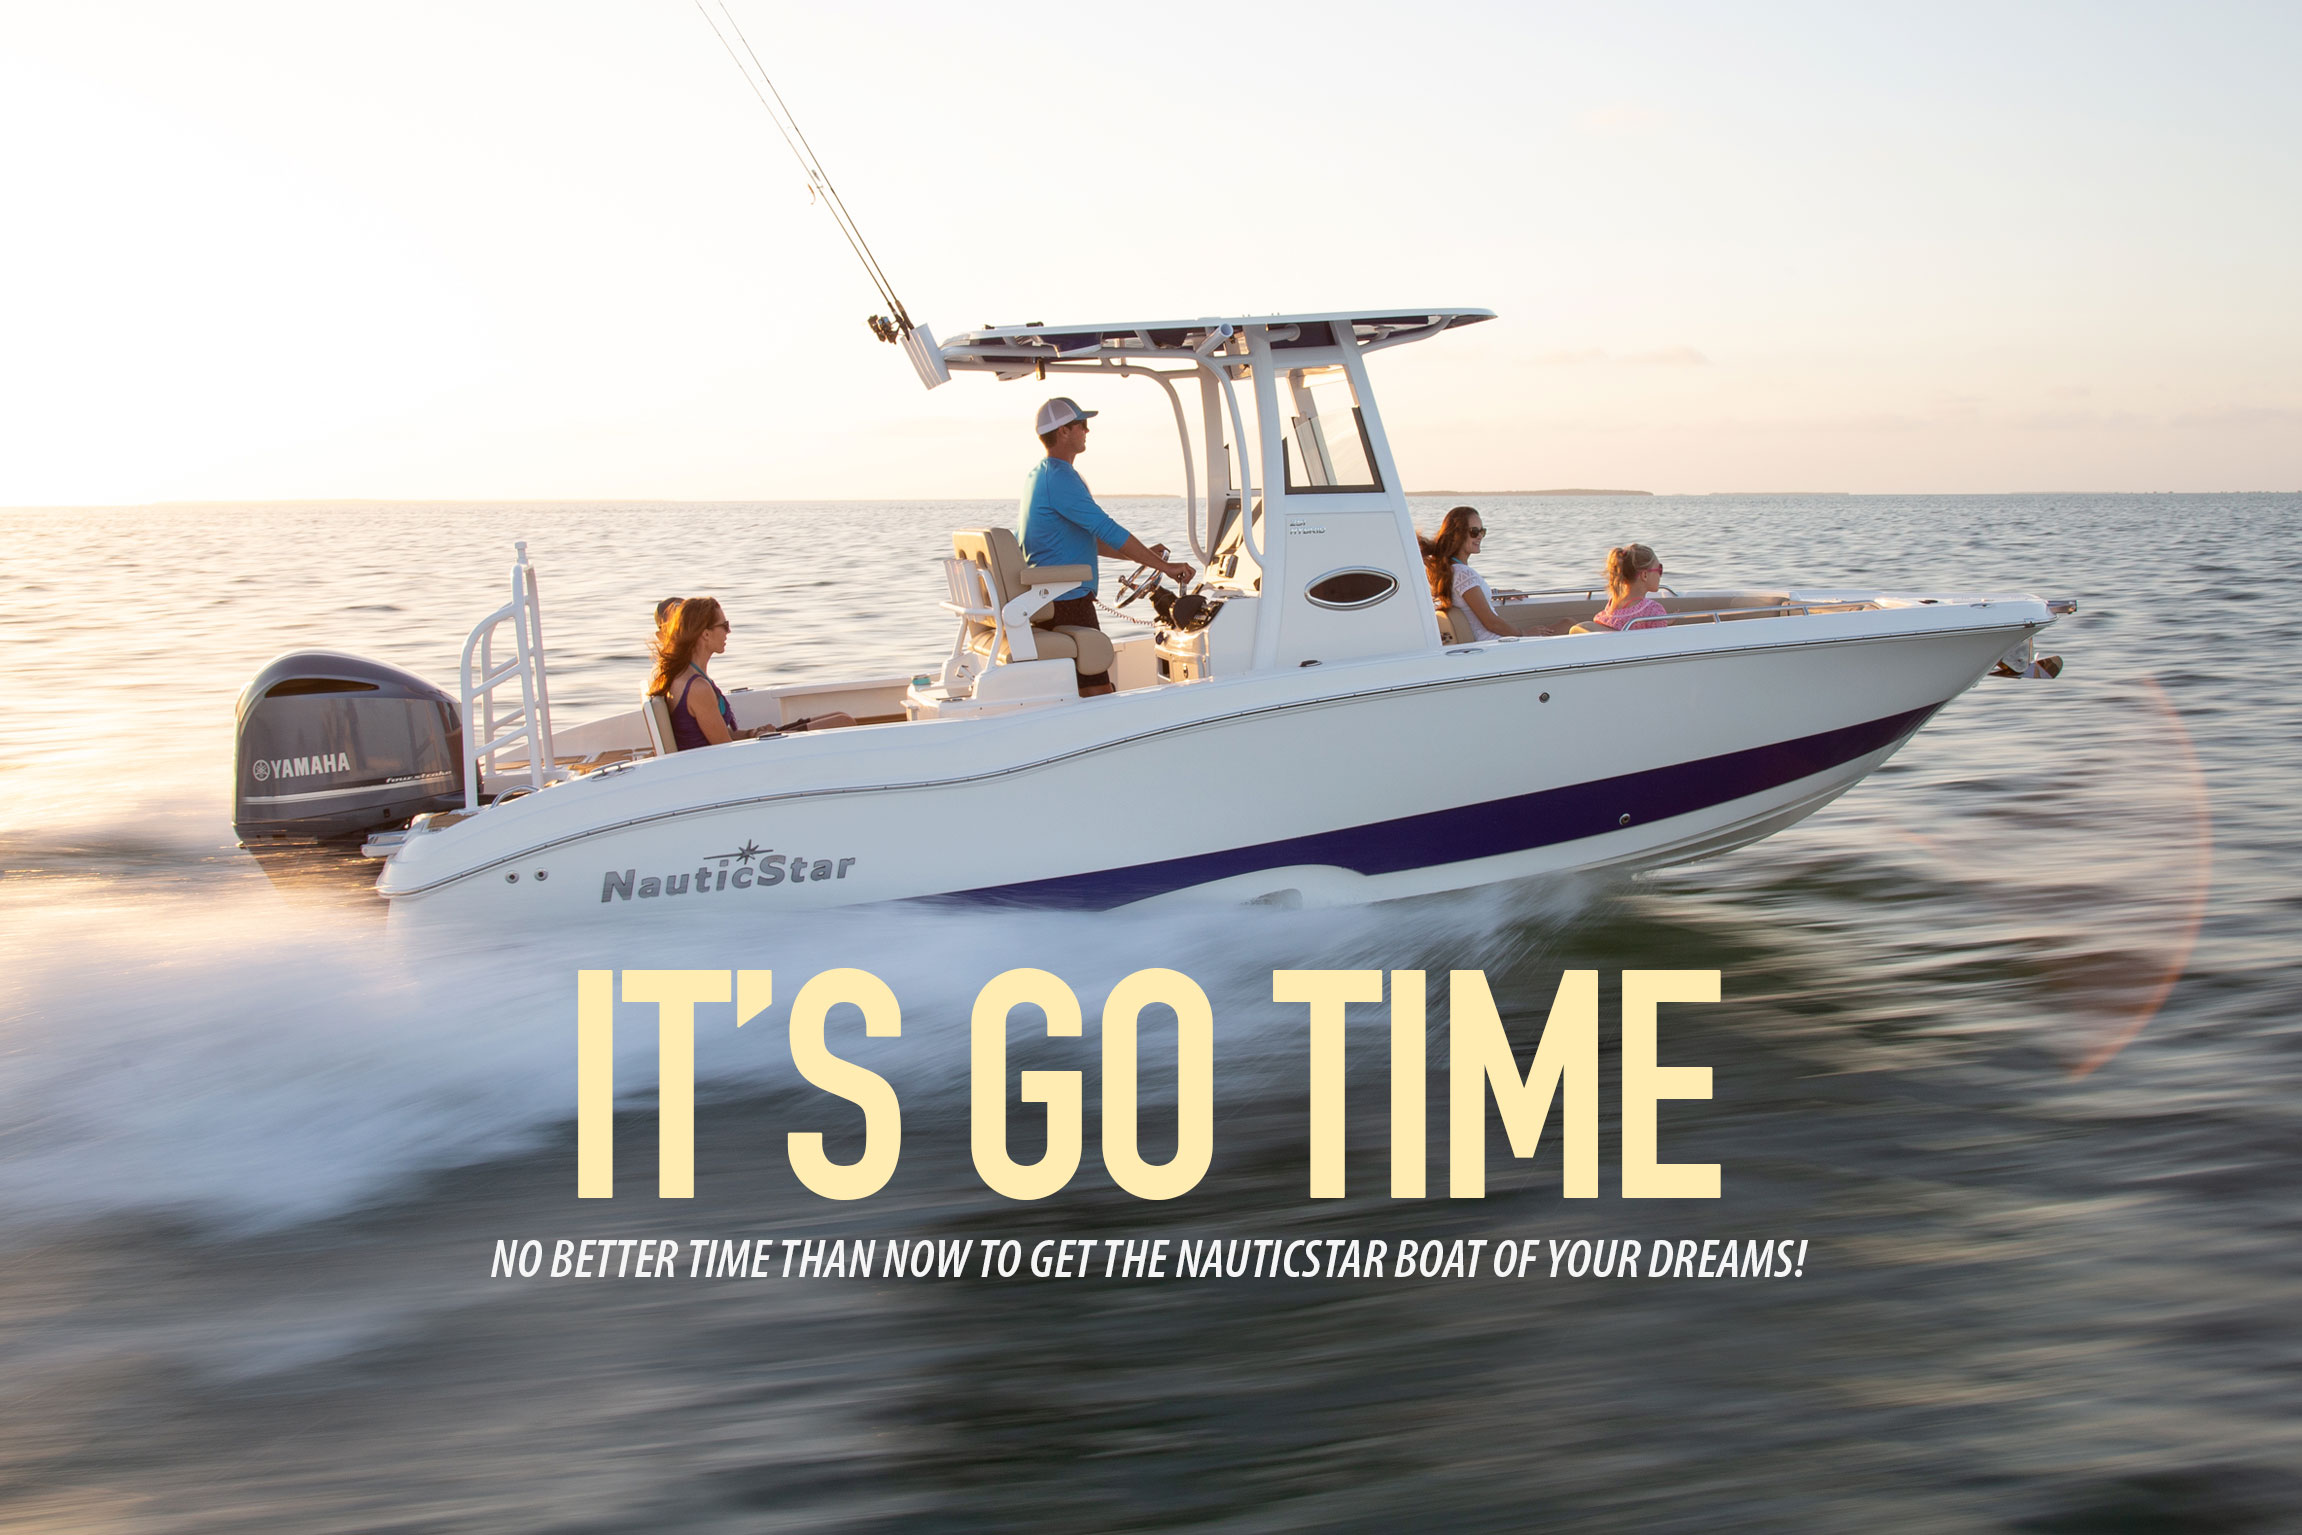 its go time for a great nauticstar deal